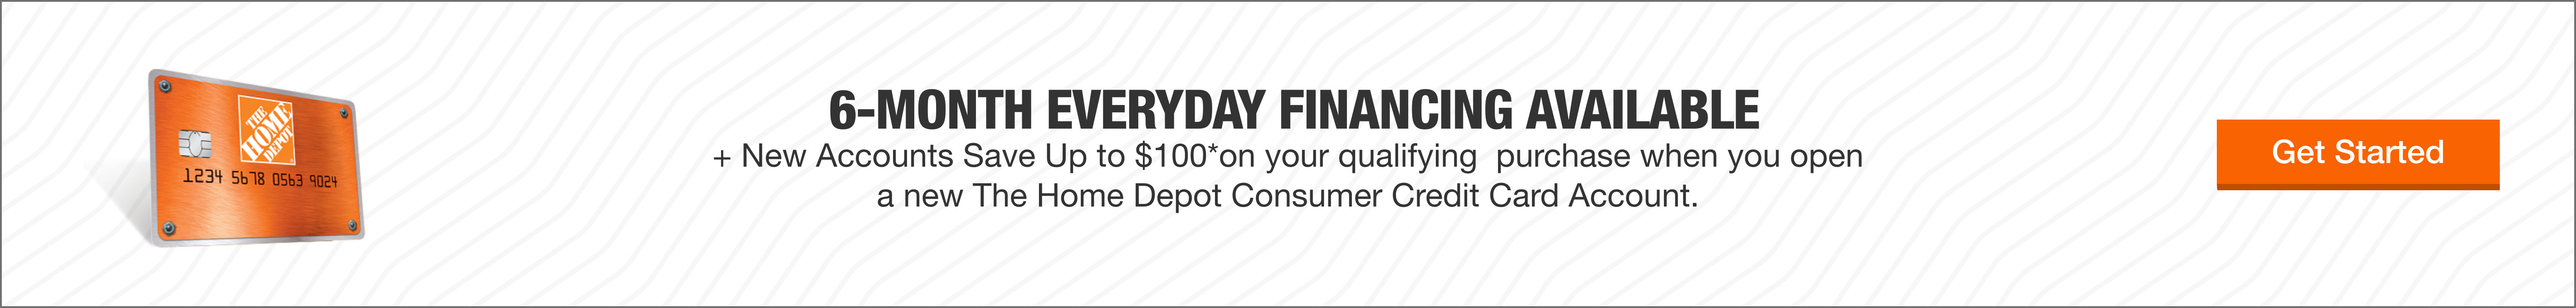 6 month credit offer